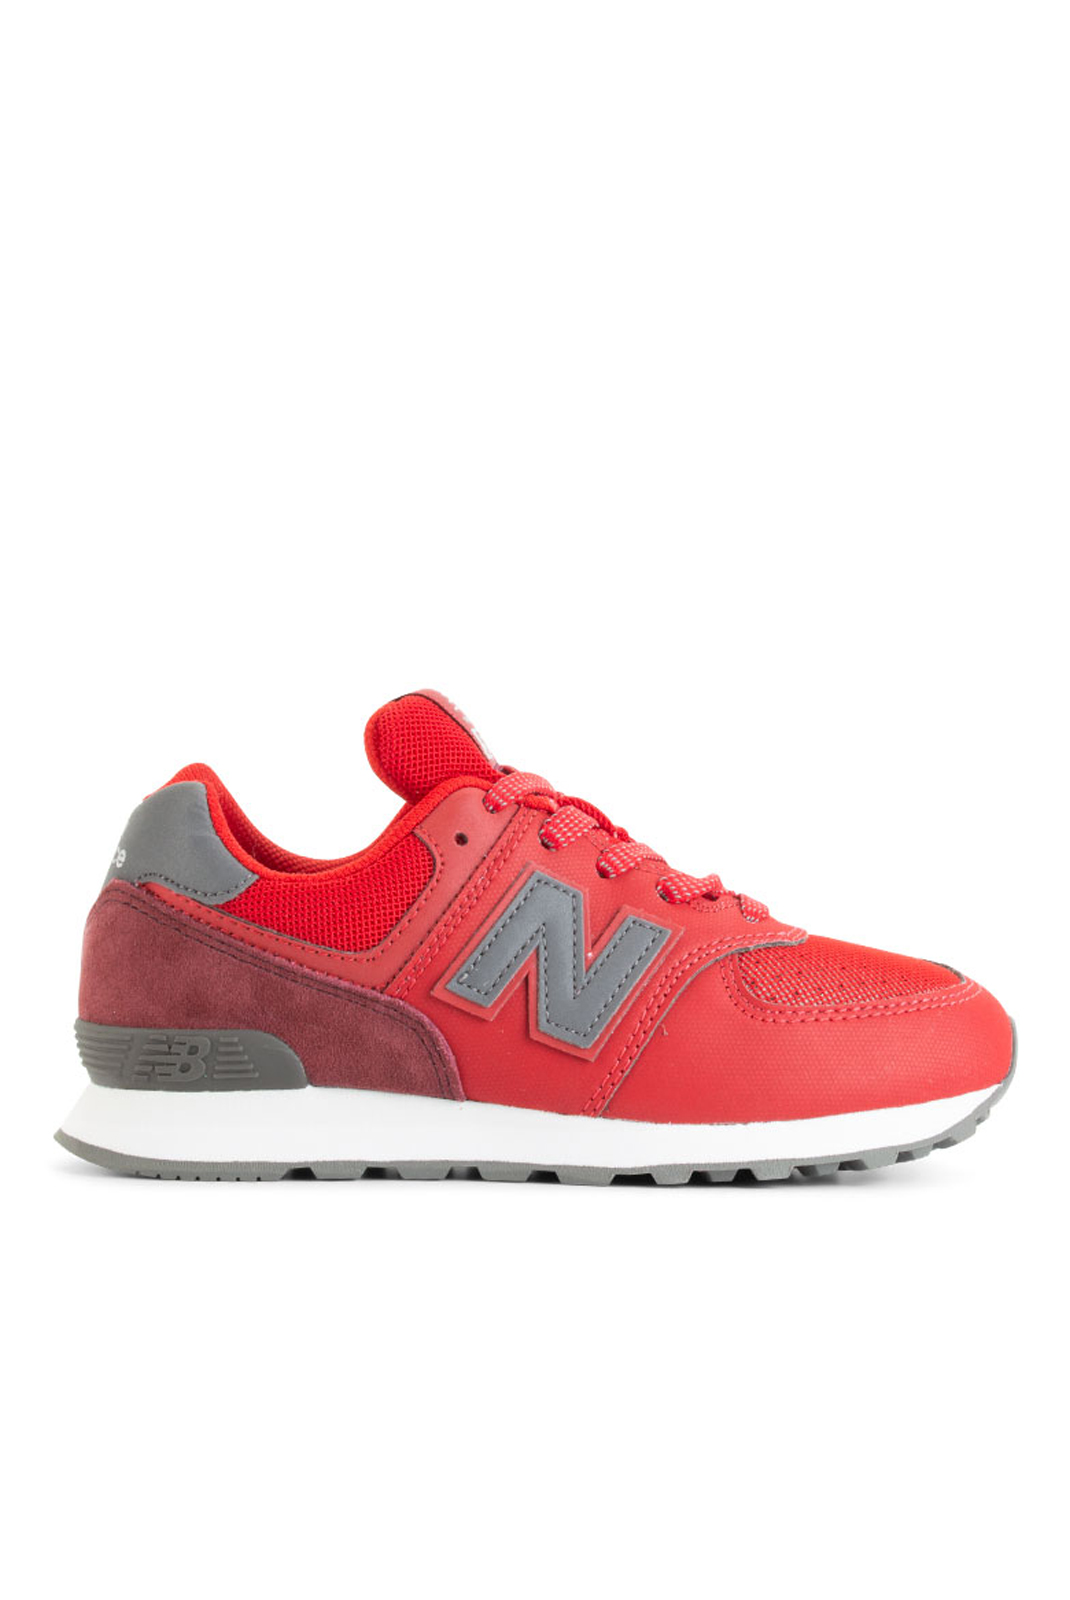 Baskets / Sneakers  New balance PC574D1 rouge